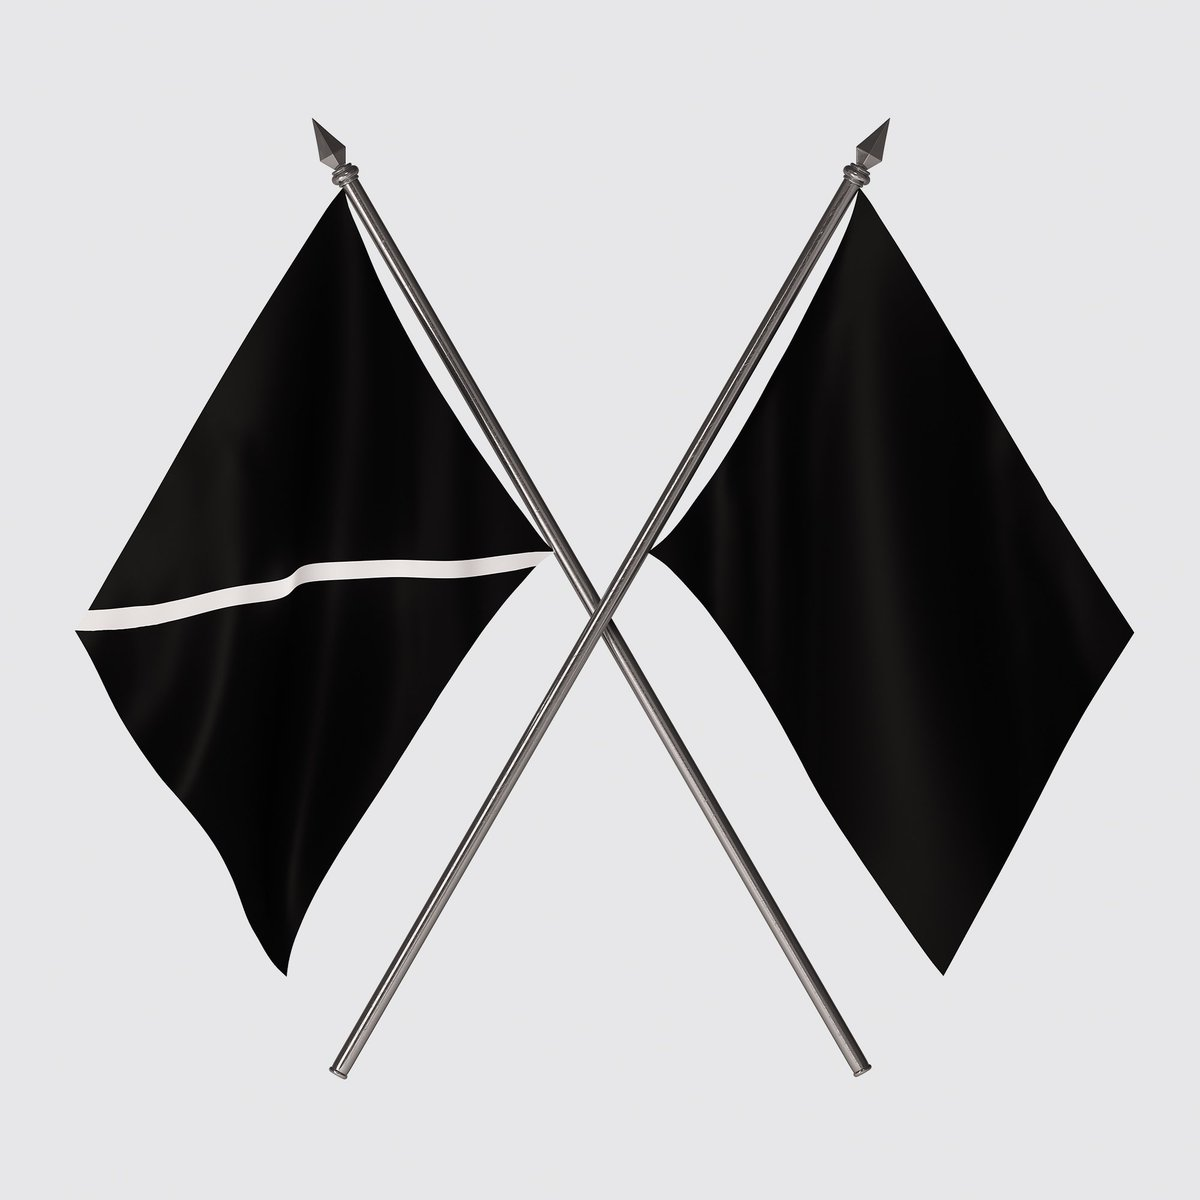 🔊Pre-order #EXO's 6th album #OBSESSION (EXO & X-EXO Ver.) from the links below🔥👇🏻👇🏻 ▶️ Amazon: smarturl.it/Amazon_EXO_OBS… ▶️ SM Global Shop: smarturl.it/SGS_EXO_OBSESS… ▶️ Deep Discount: smarturl.it/DeepD_EXO_OBSE… ✔️ Count towards Gaon for intl. & Billboard Charts for US